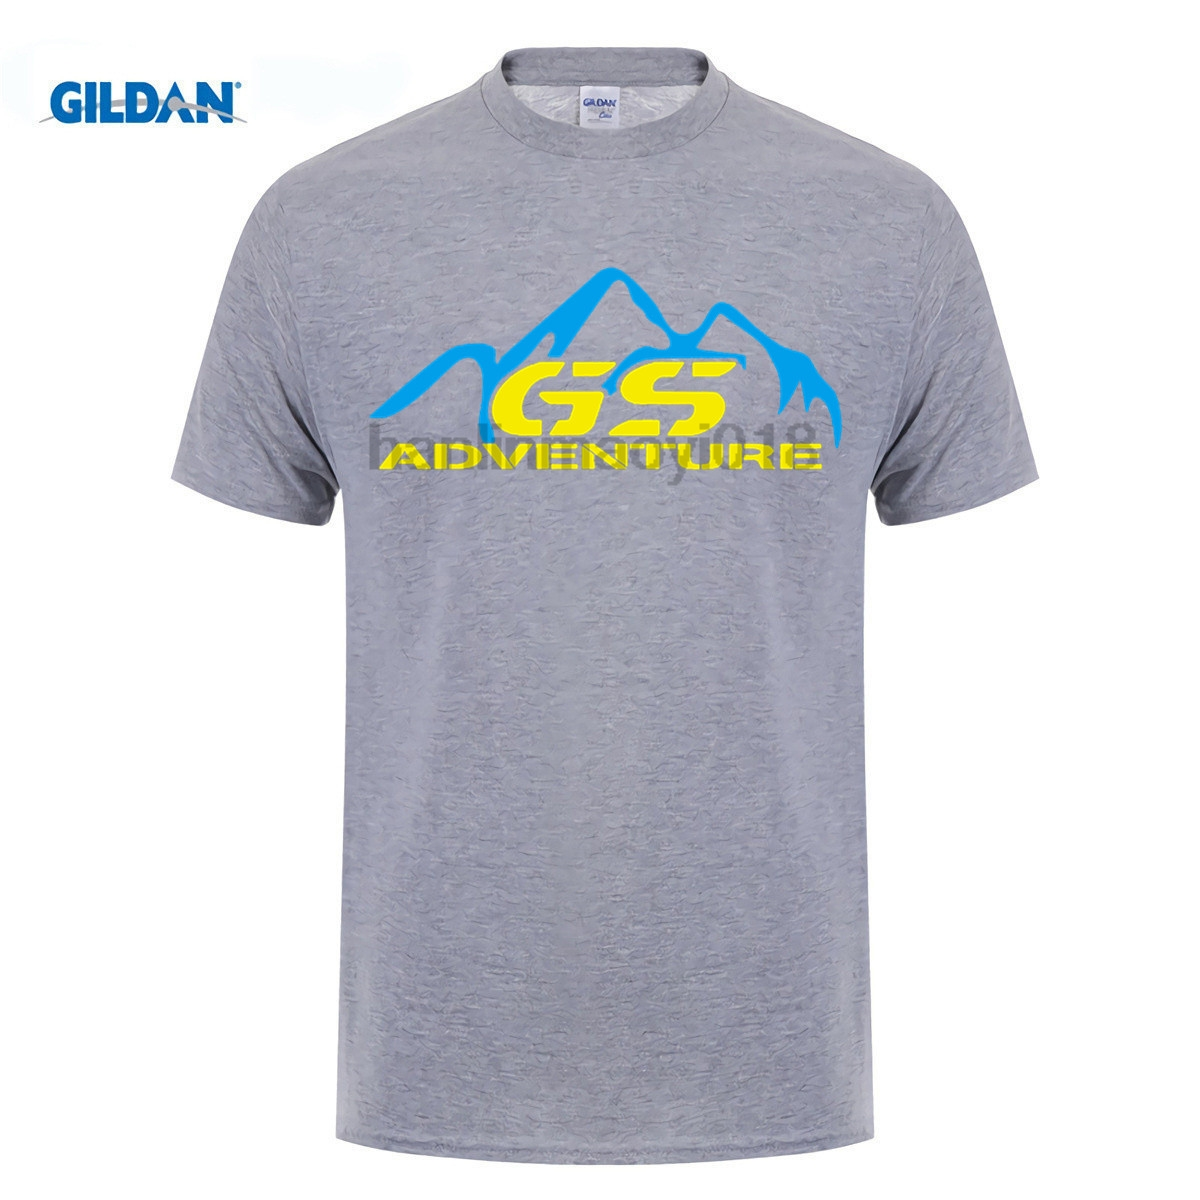 GILDAN Fashion Brand T Shirts Men Summer Casual Tee Shirts fan Adventure For R 1100 1150 1200 Gs Gsa Driver custom T Shirts